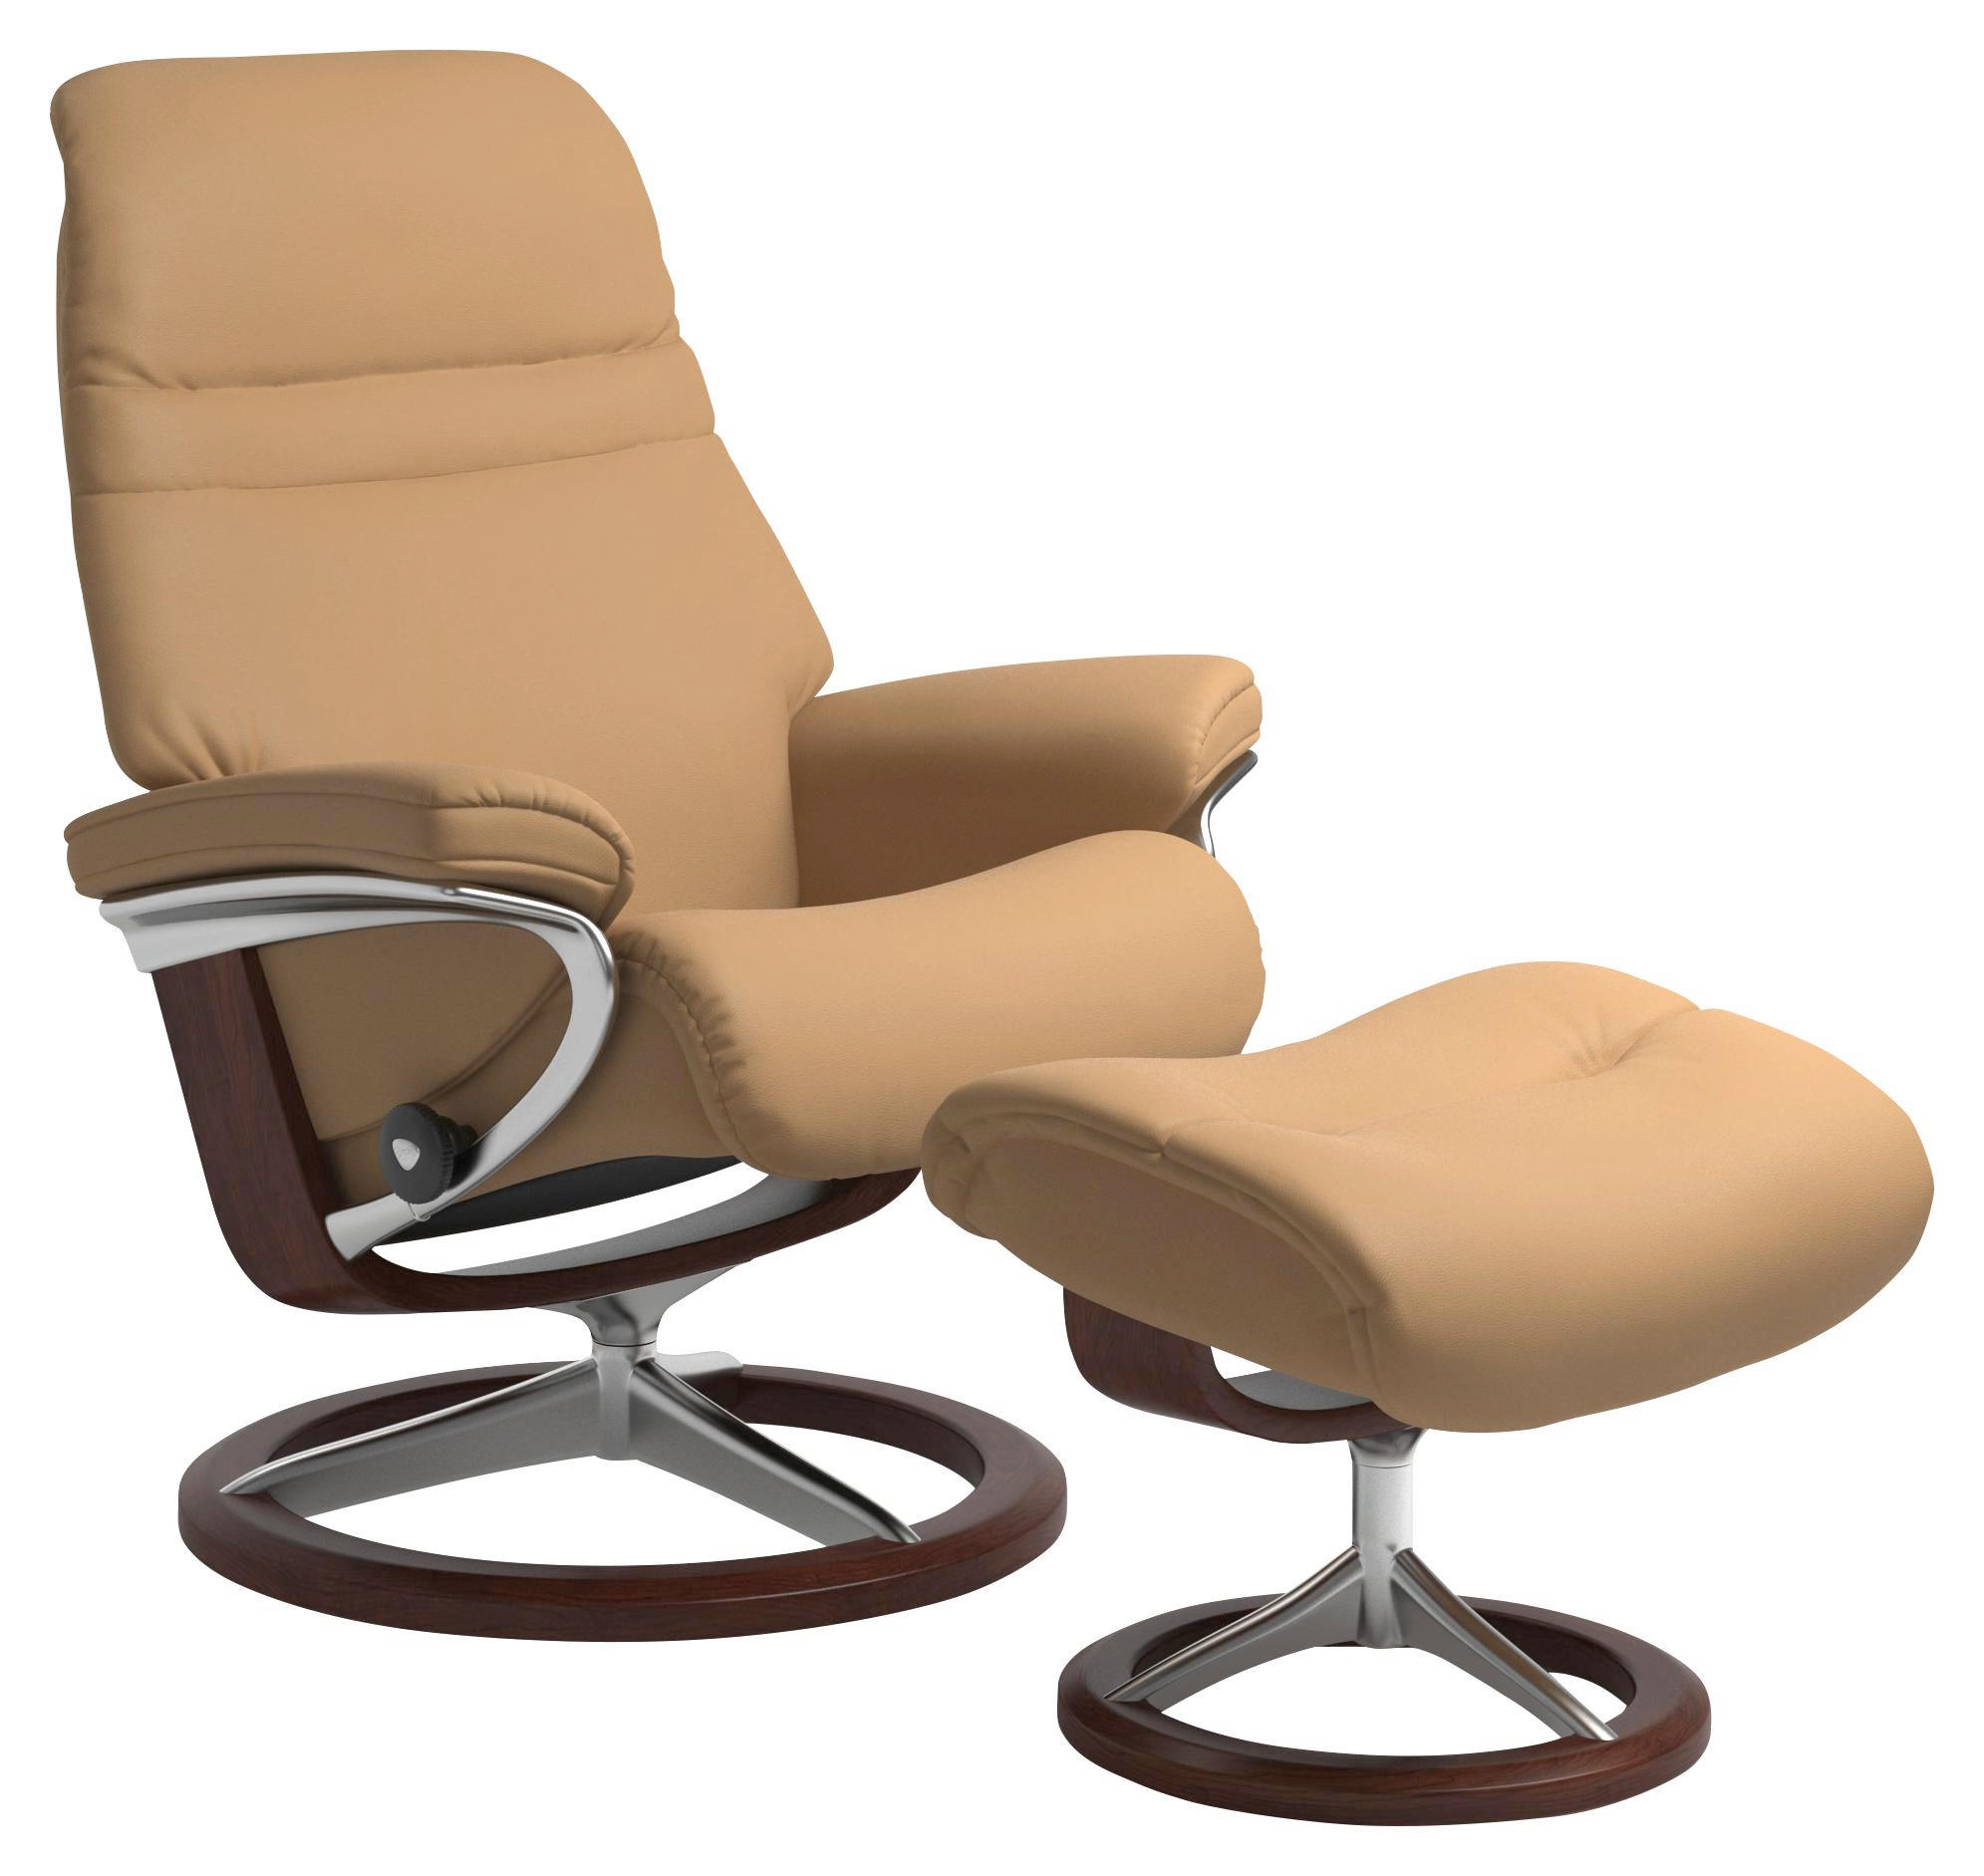 Stressless Sessel Sunrise.html Sesselset Sunrise M Echtleder Hocker